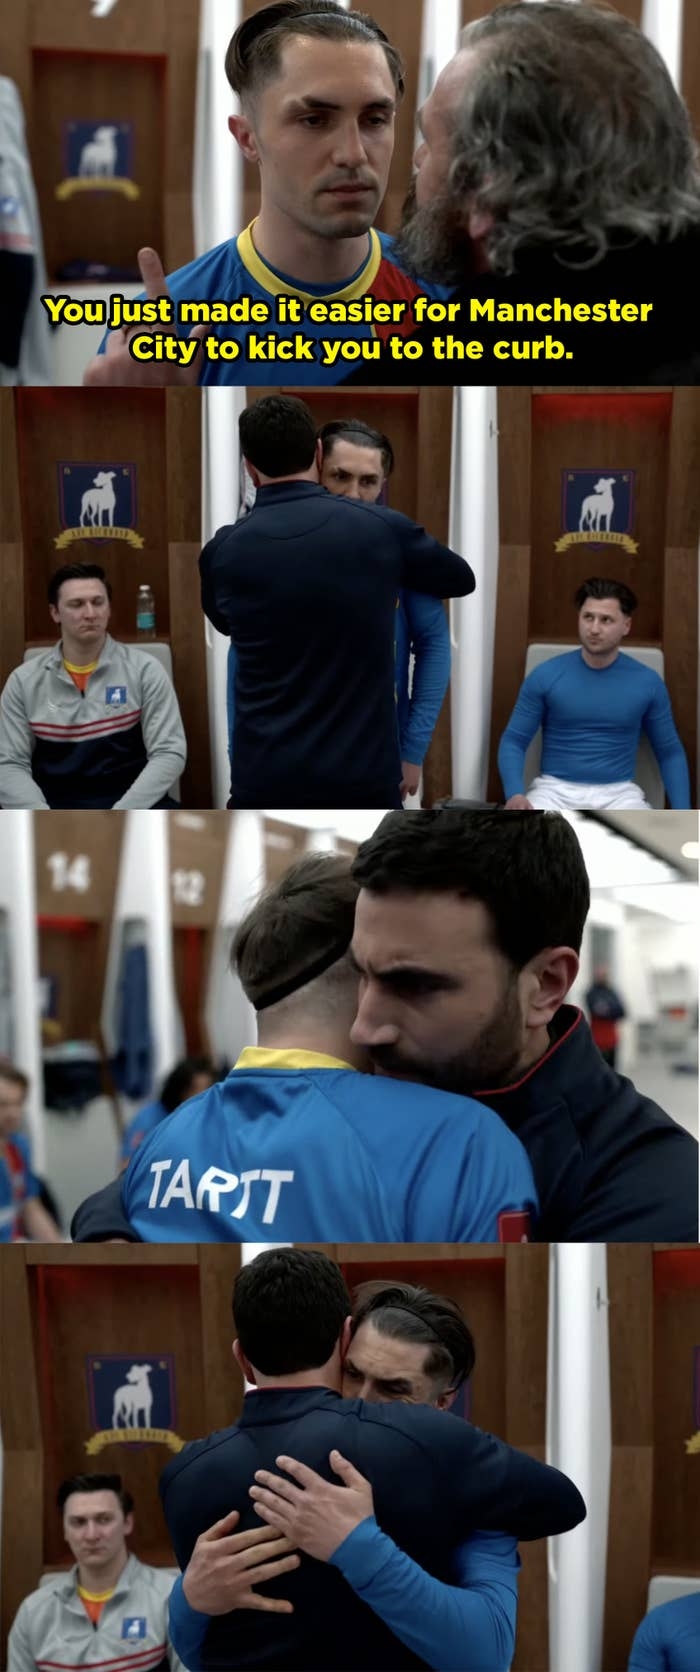 Jamie's dad berates him in front of the entire team and then Roy walks over to hug him and Jamie breaks down crying.